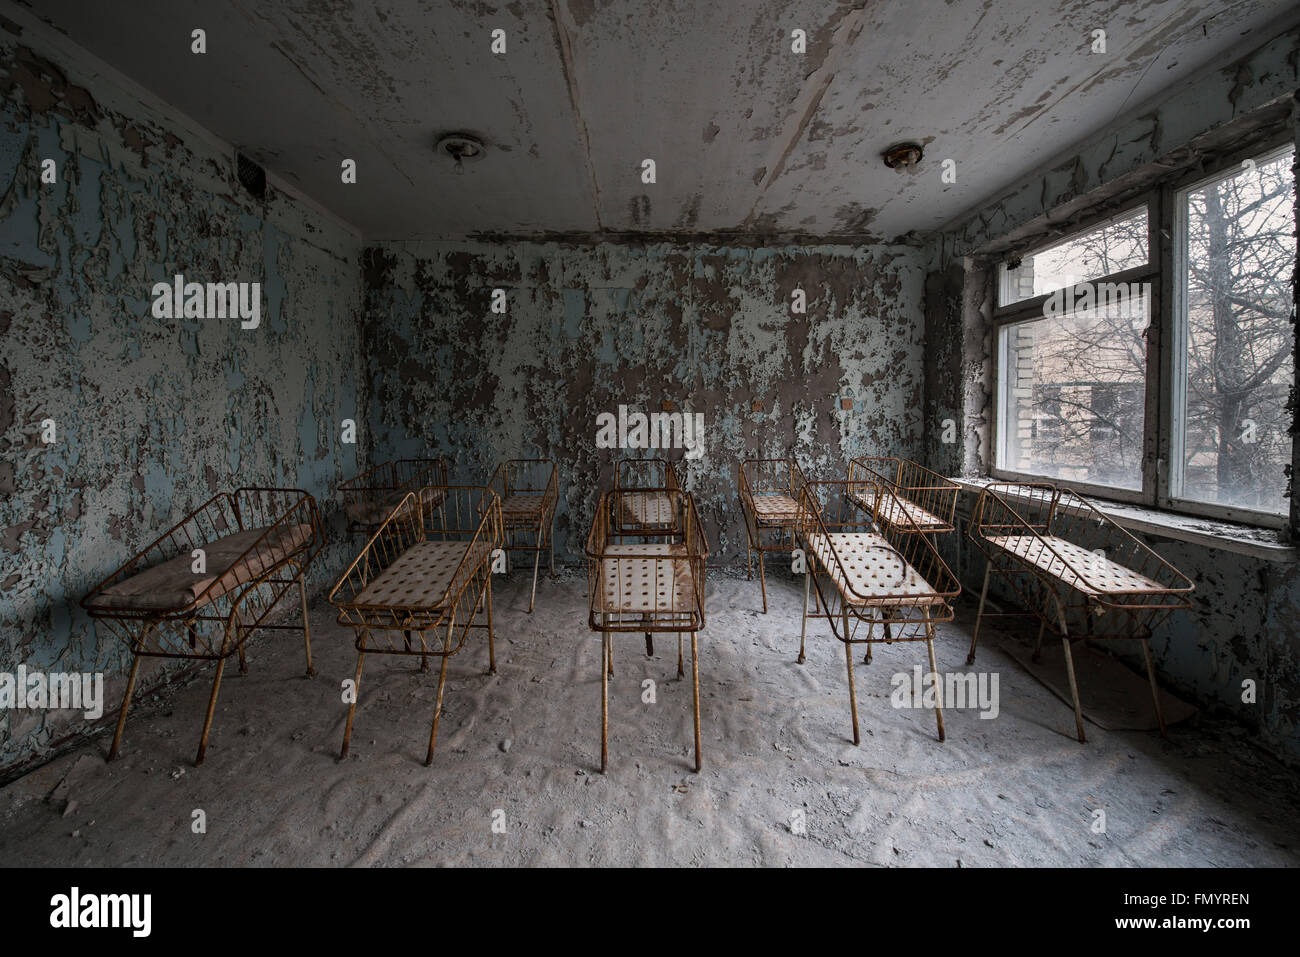 Babies cots in hospital in Pripyat, Chernobyl scene of 1986 nuclear disaster - Stock Image